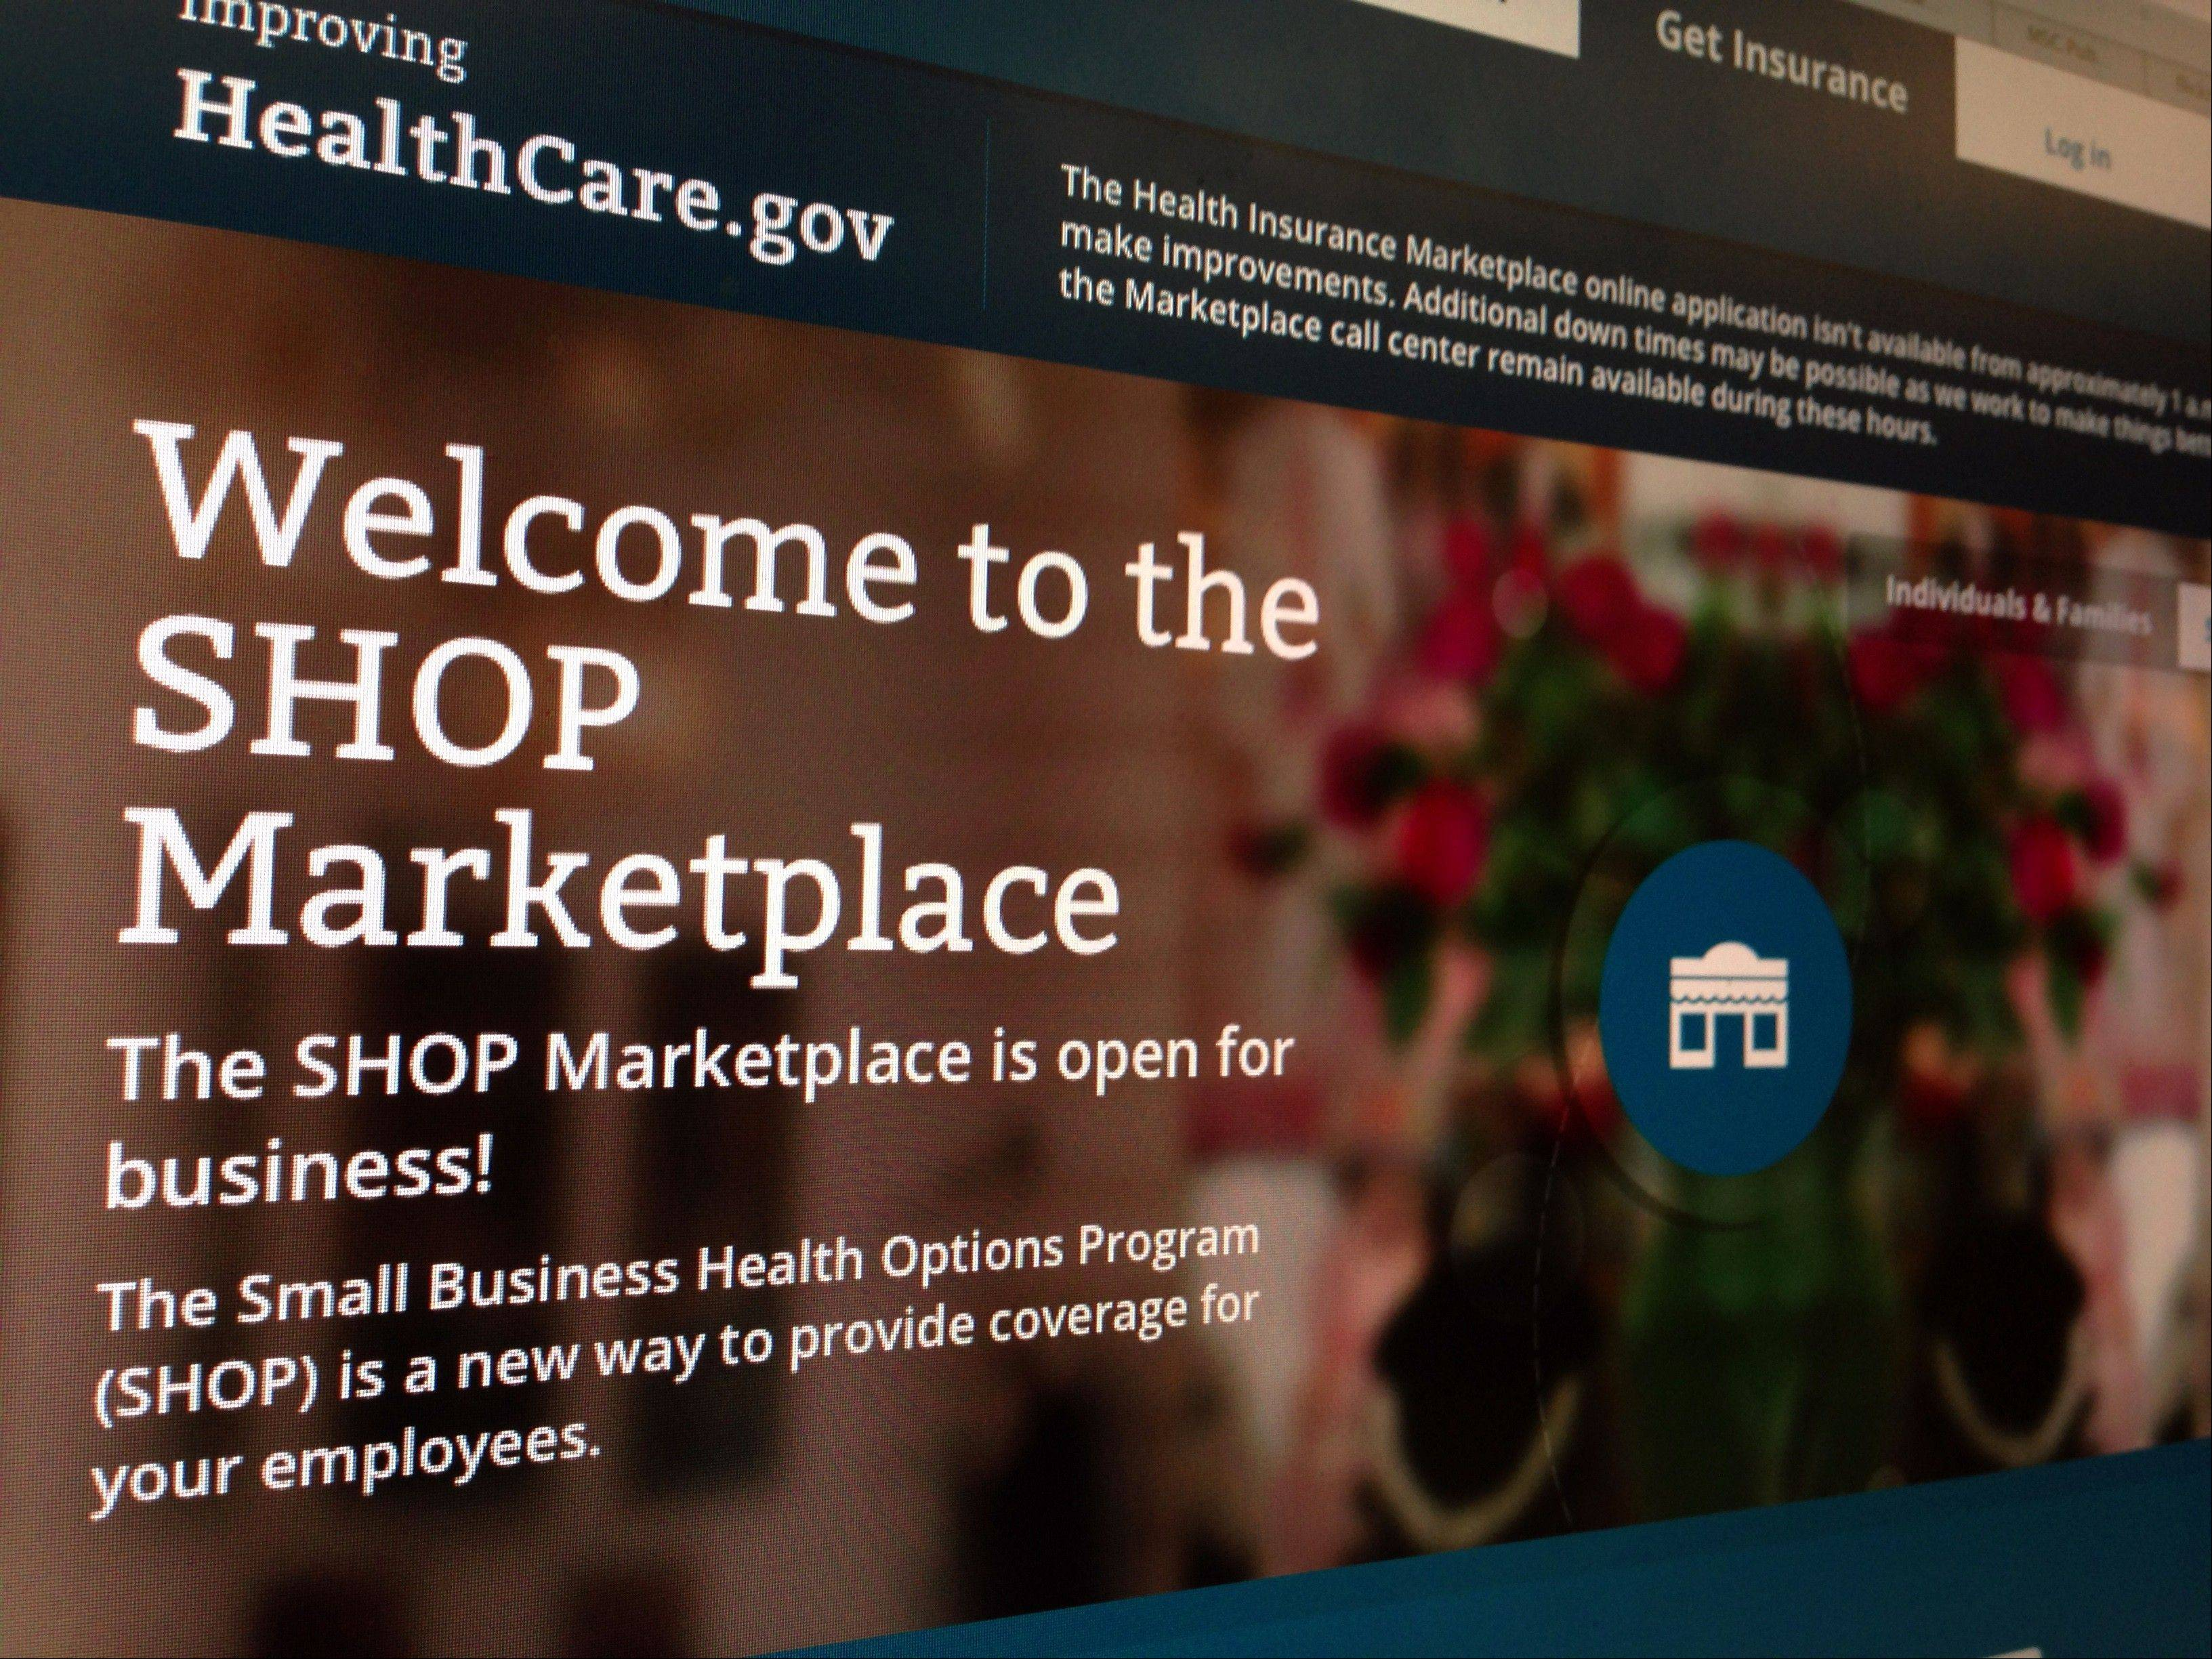 The government's revamped health care website was put to its biggest test yet as a record-breaking surge of Americans rushed to beat Tuesday's extended deadline for signing up for coverage.